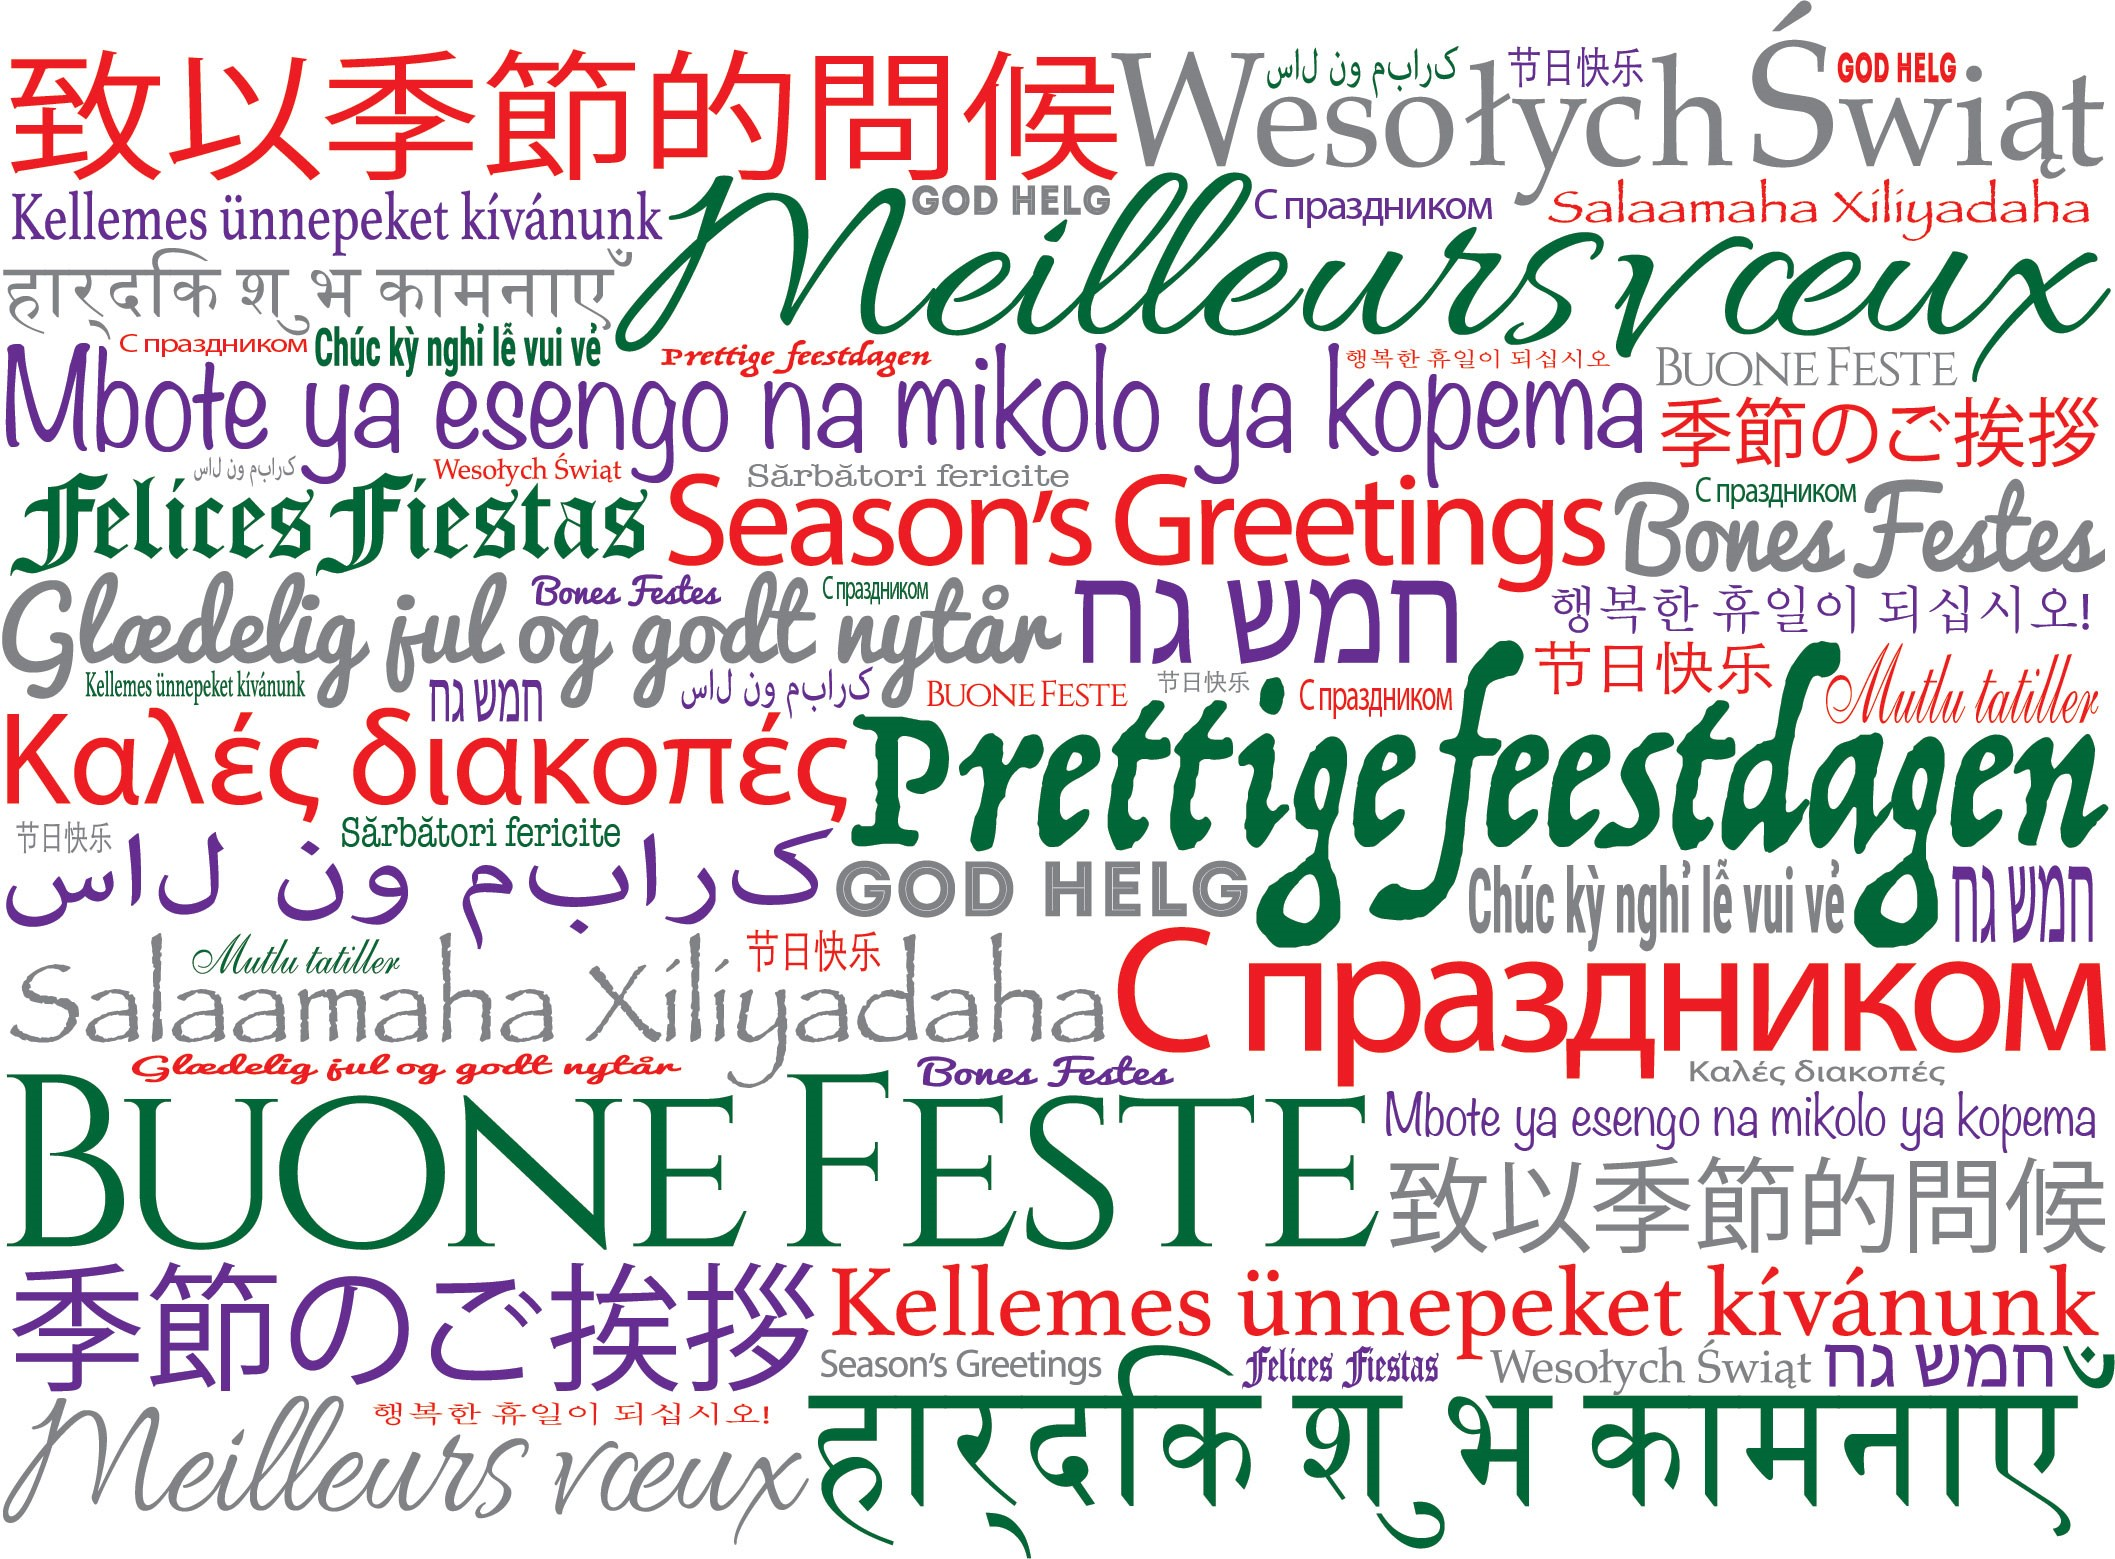 Holiday salutations in different languages